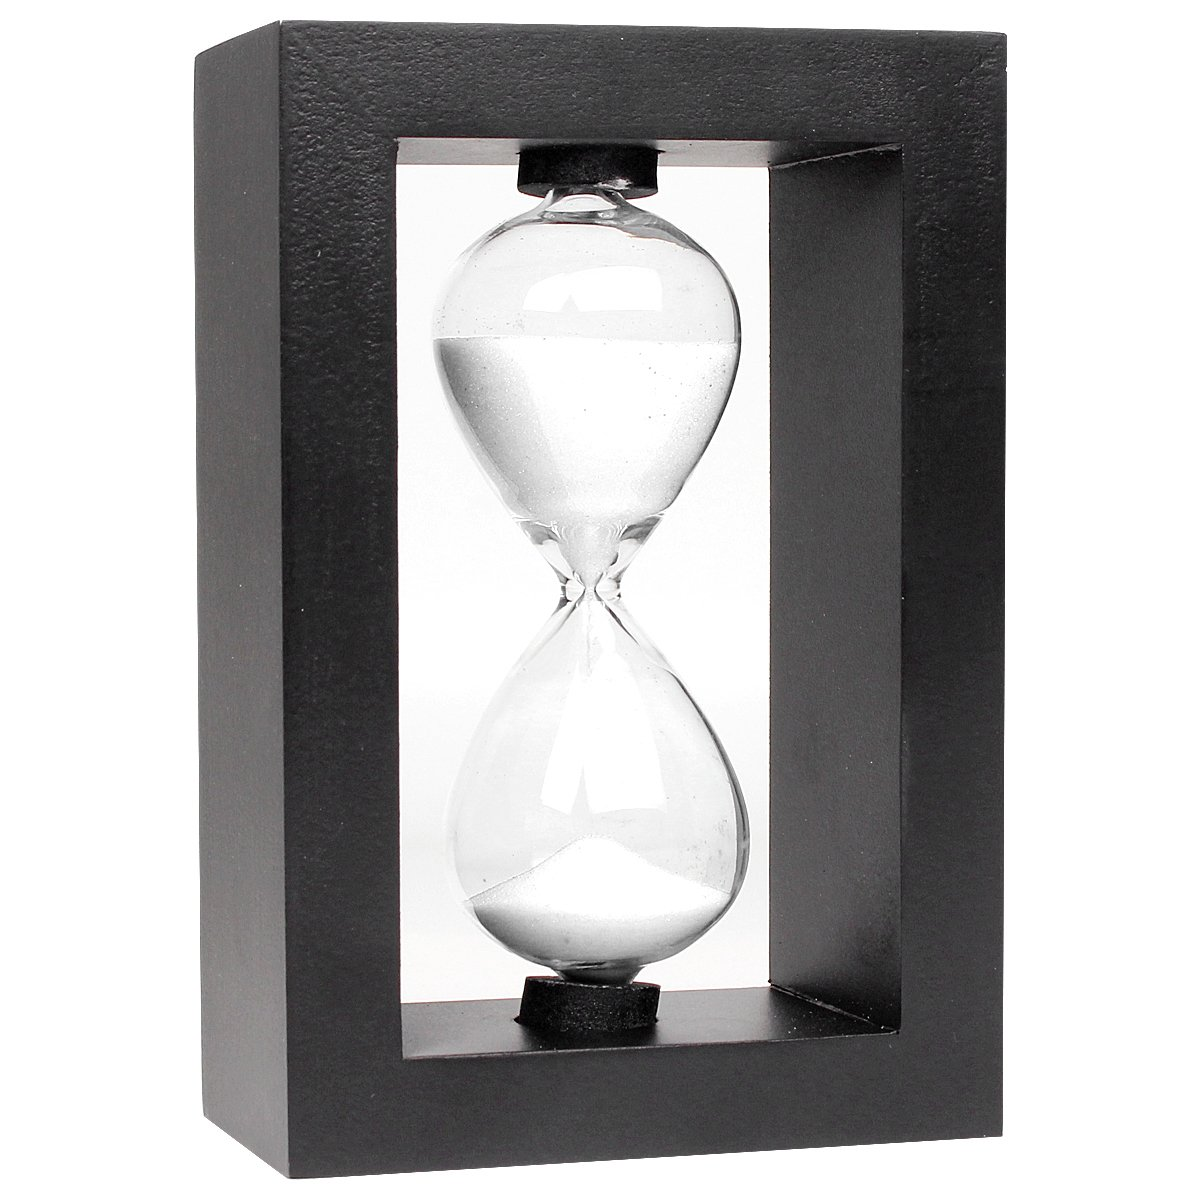 Sunmid Wooden Sandglass Sand Clock Timer Hot Sale Christmas Gift Color 10 Minute Hand-Blown hourglass Countdown Timing Home Decoration Decor Xmas Toys Graduation Gifts (White)